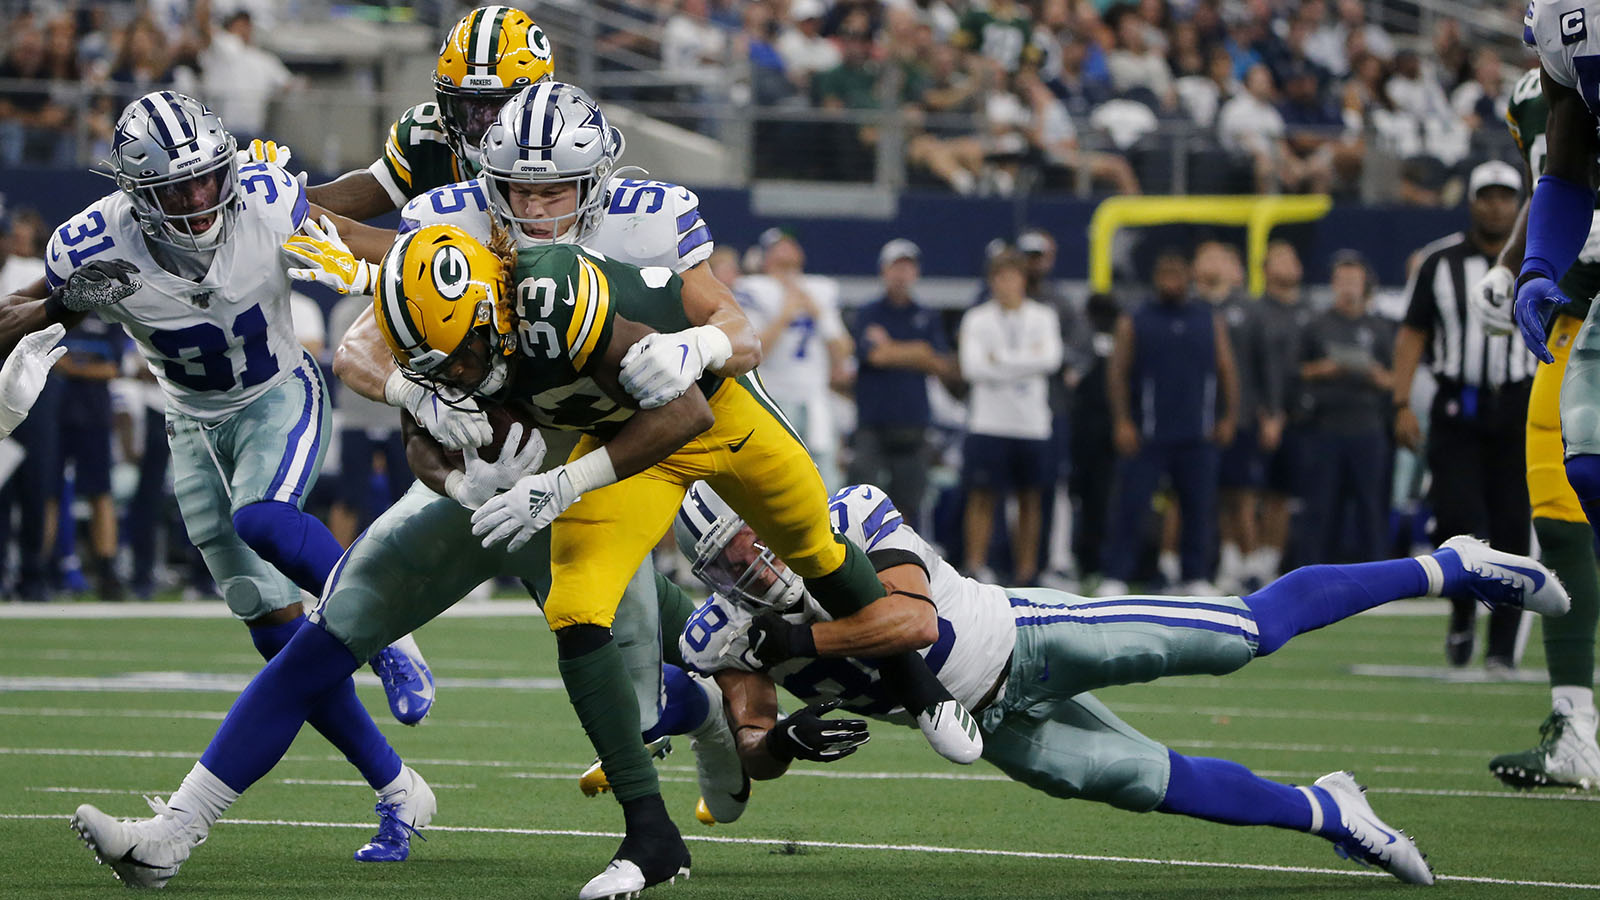 Green Bay Packers running back Aaron Jones (33) carries Dallas Cowboys outside linebacker Leighton Vander Esch (55) and strong safety Jeff Heath (38) as he gains extra yardage on a run for a first down in the first half of an NFL football game in Arlington, Texas, Sunday, Oct. 6, 2019. (AP Photo/Michael Ainsworth)